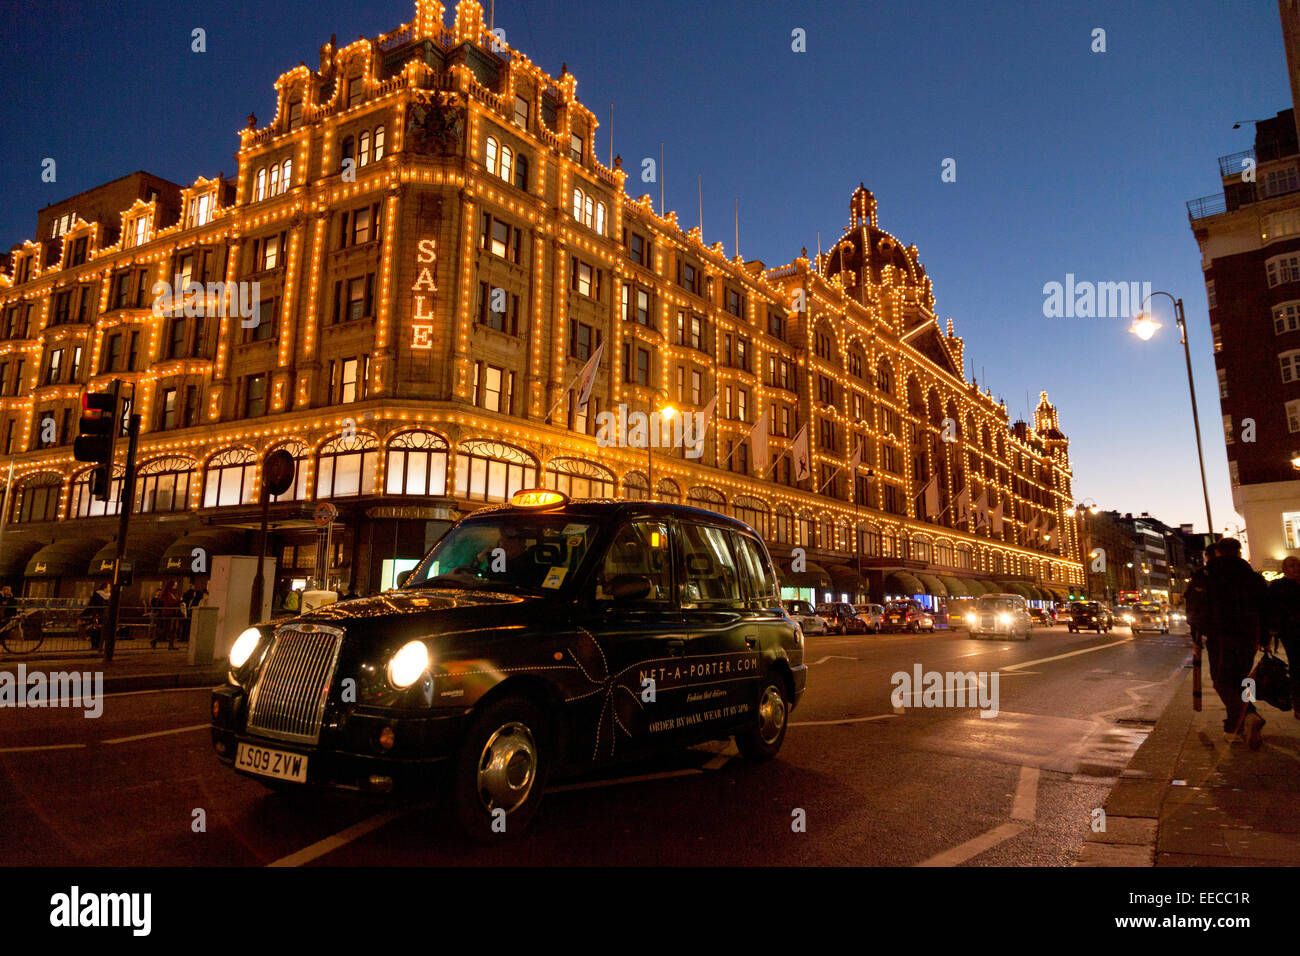 Harrods london stock photos harrods london stock images for The knightsbridge